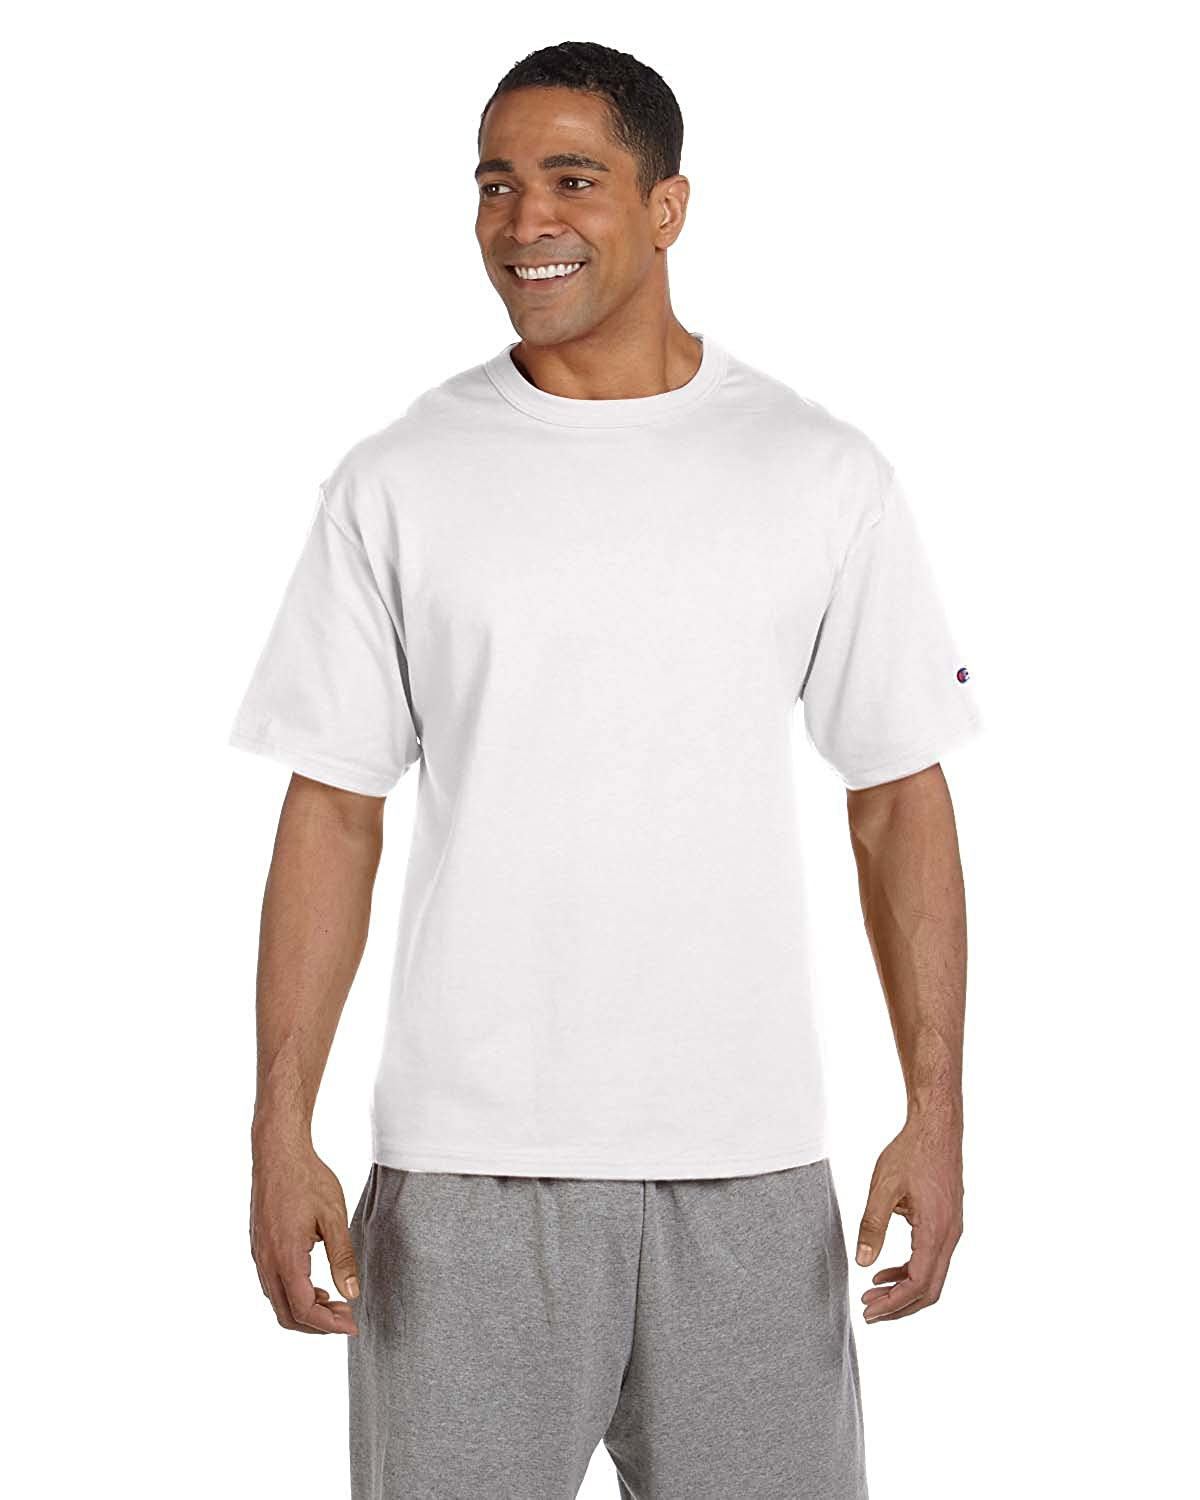 3e7fb979 Champion 7 oz Cotton Heritage Jersey T-Shirt in White - Large | Amazon.com